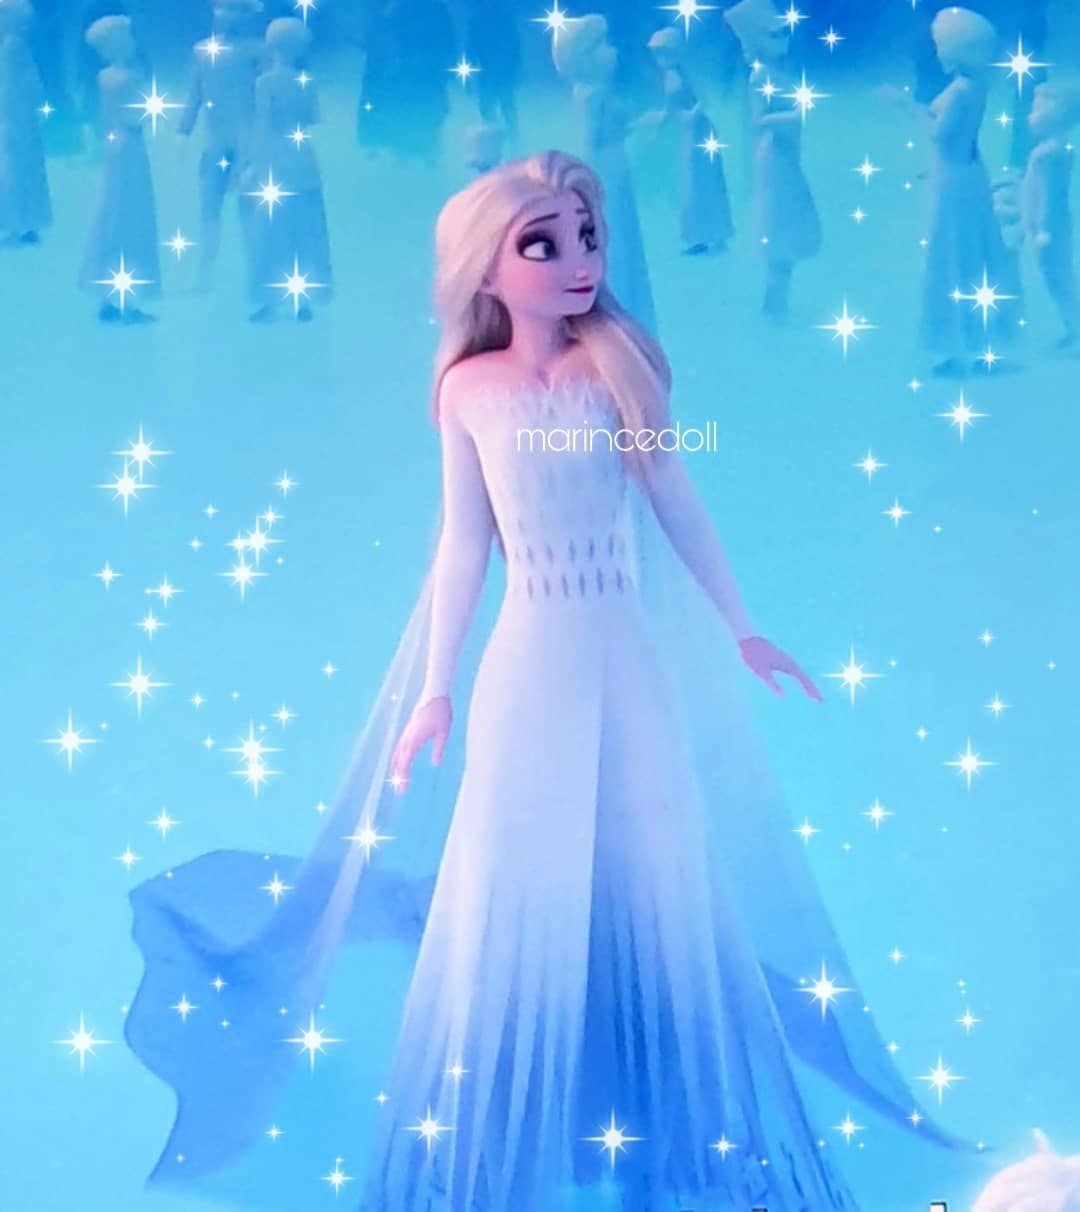 Fall In Love Dress Elsa Disney Frozen 2 New Look In 2020 Disney Princess Frozen Frozen Pictures Disney Princess Elsa